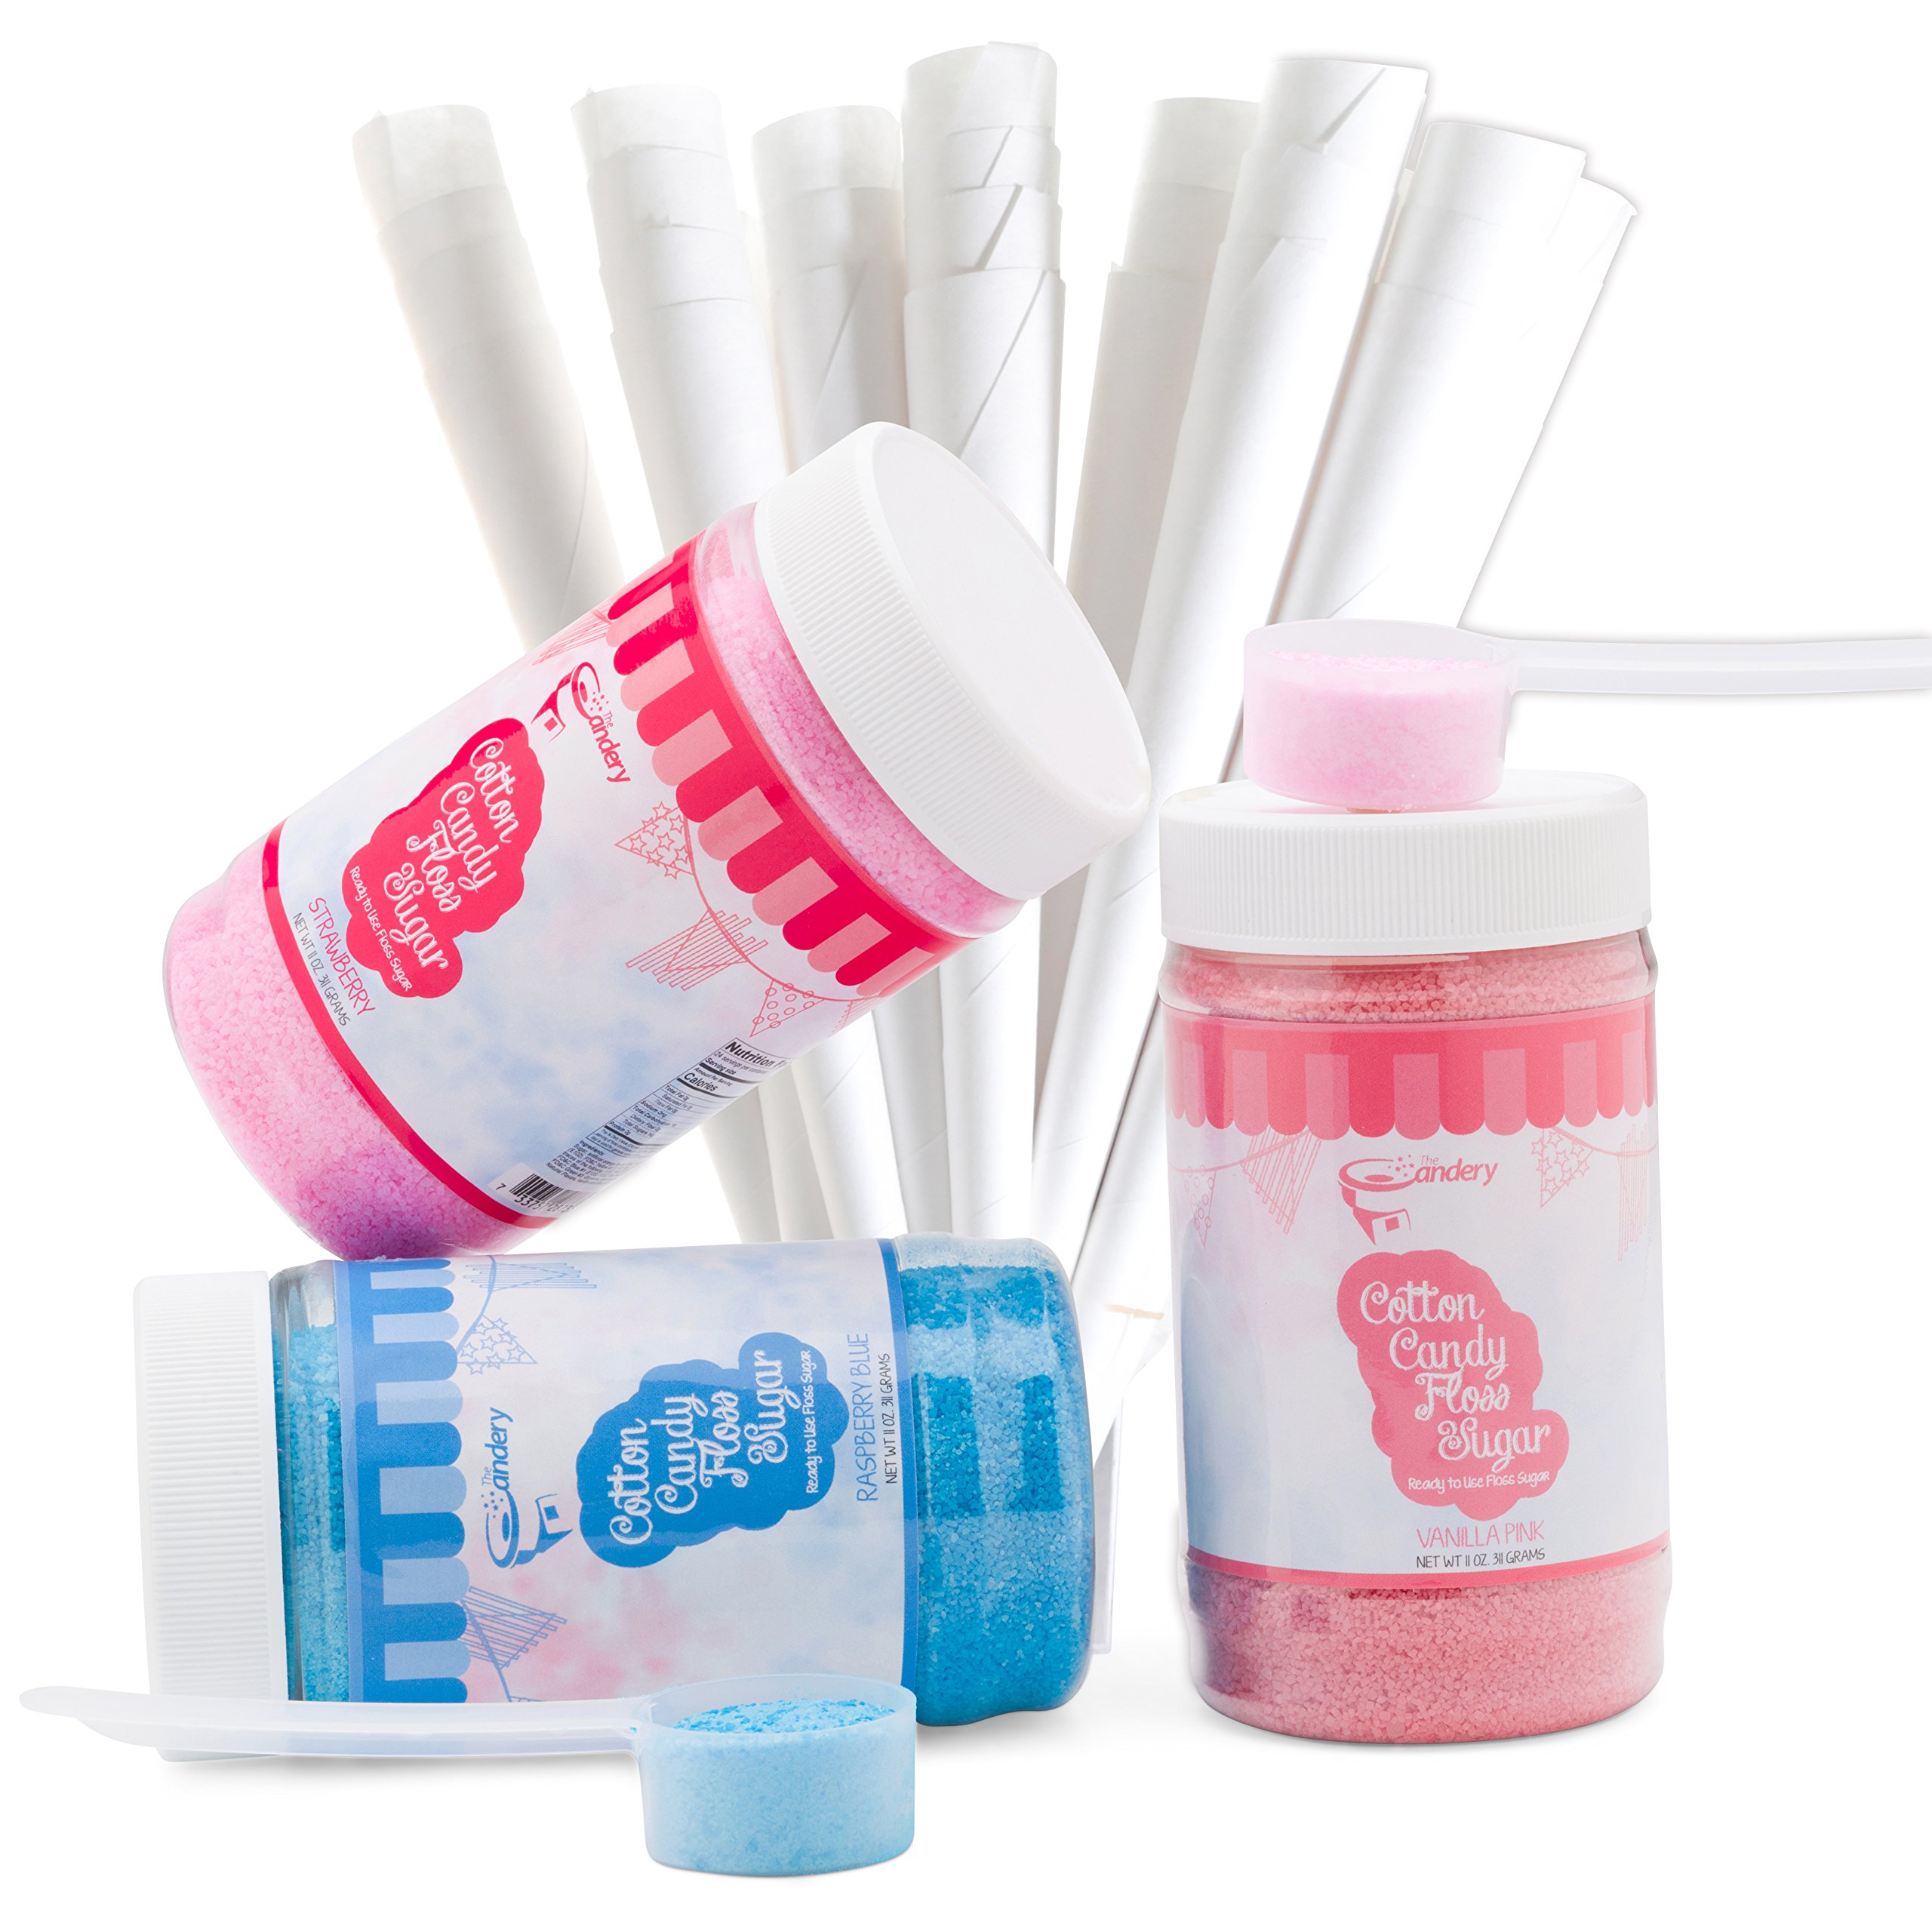 The Candery Cotton Candy Floss Sugar Kit –Raspberry Blue, Vanilla Pink and Strawberry Flavors (11 oz. Jars), 50 Cones and a Scoop – Fun Confectionary Treats for Kids and Adults